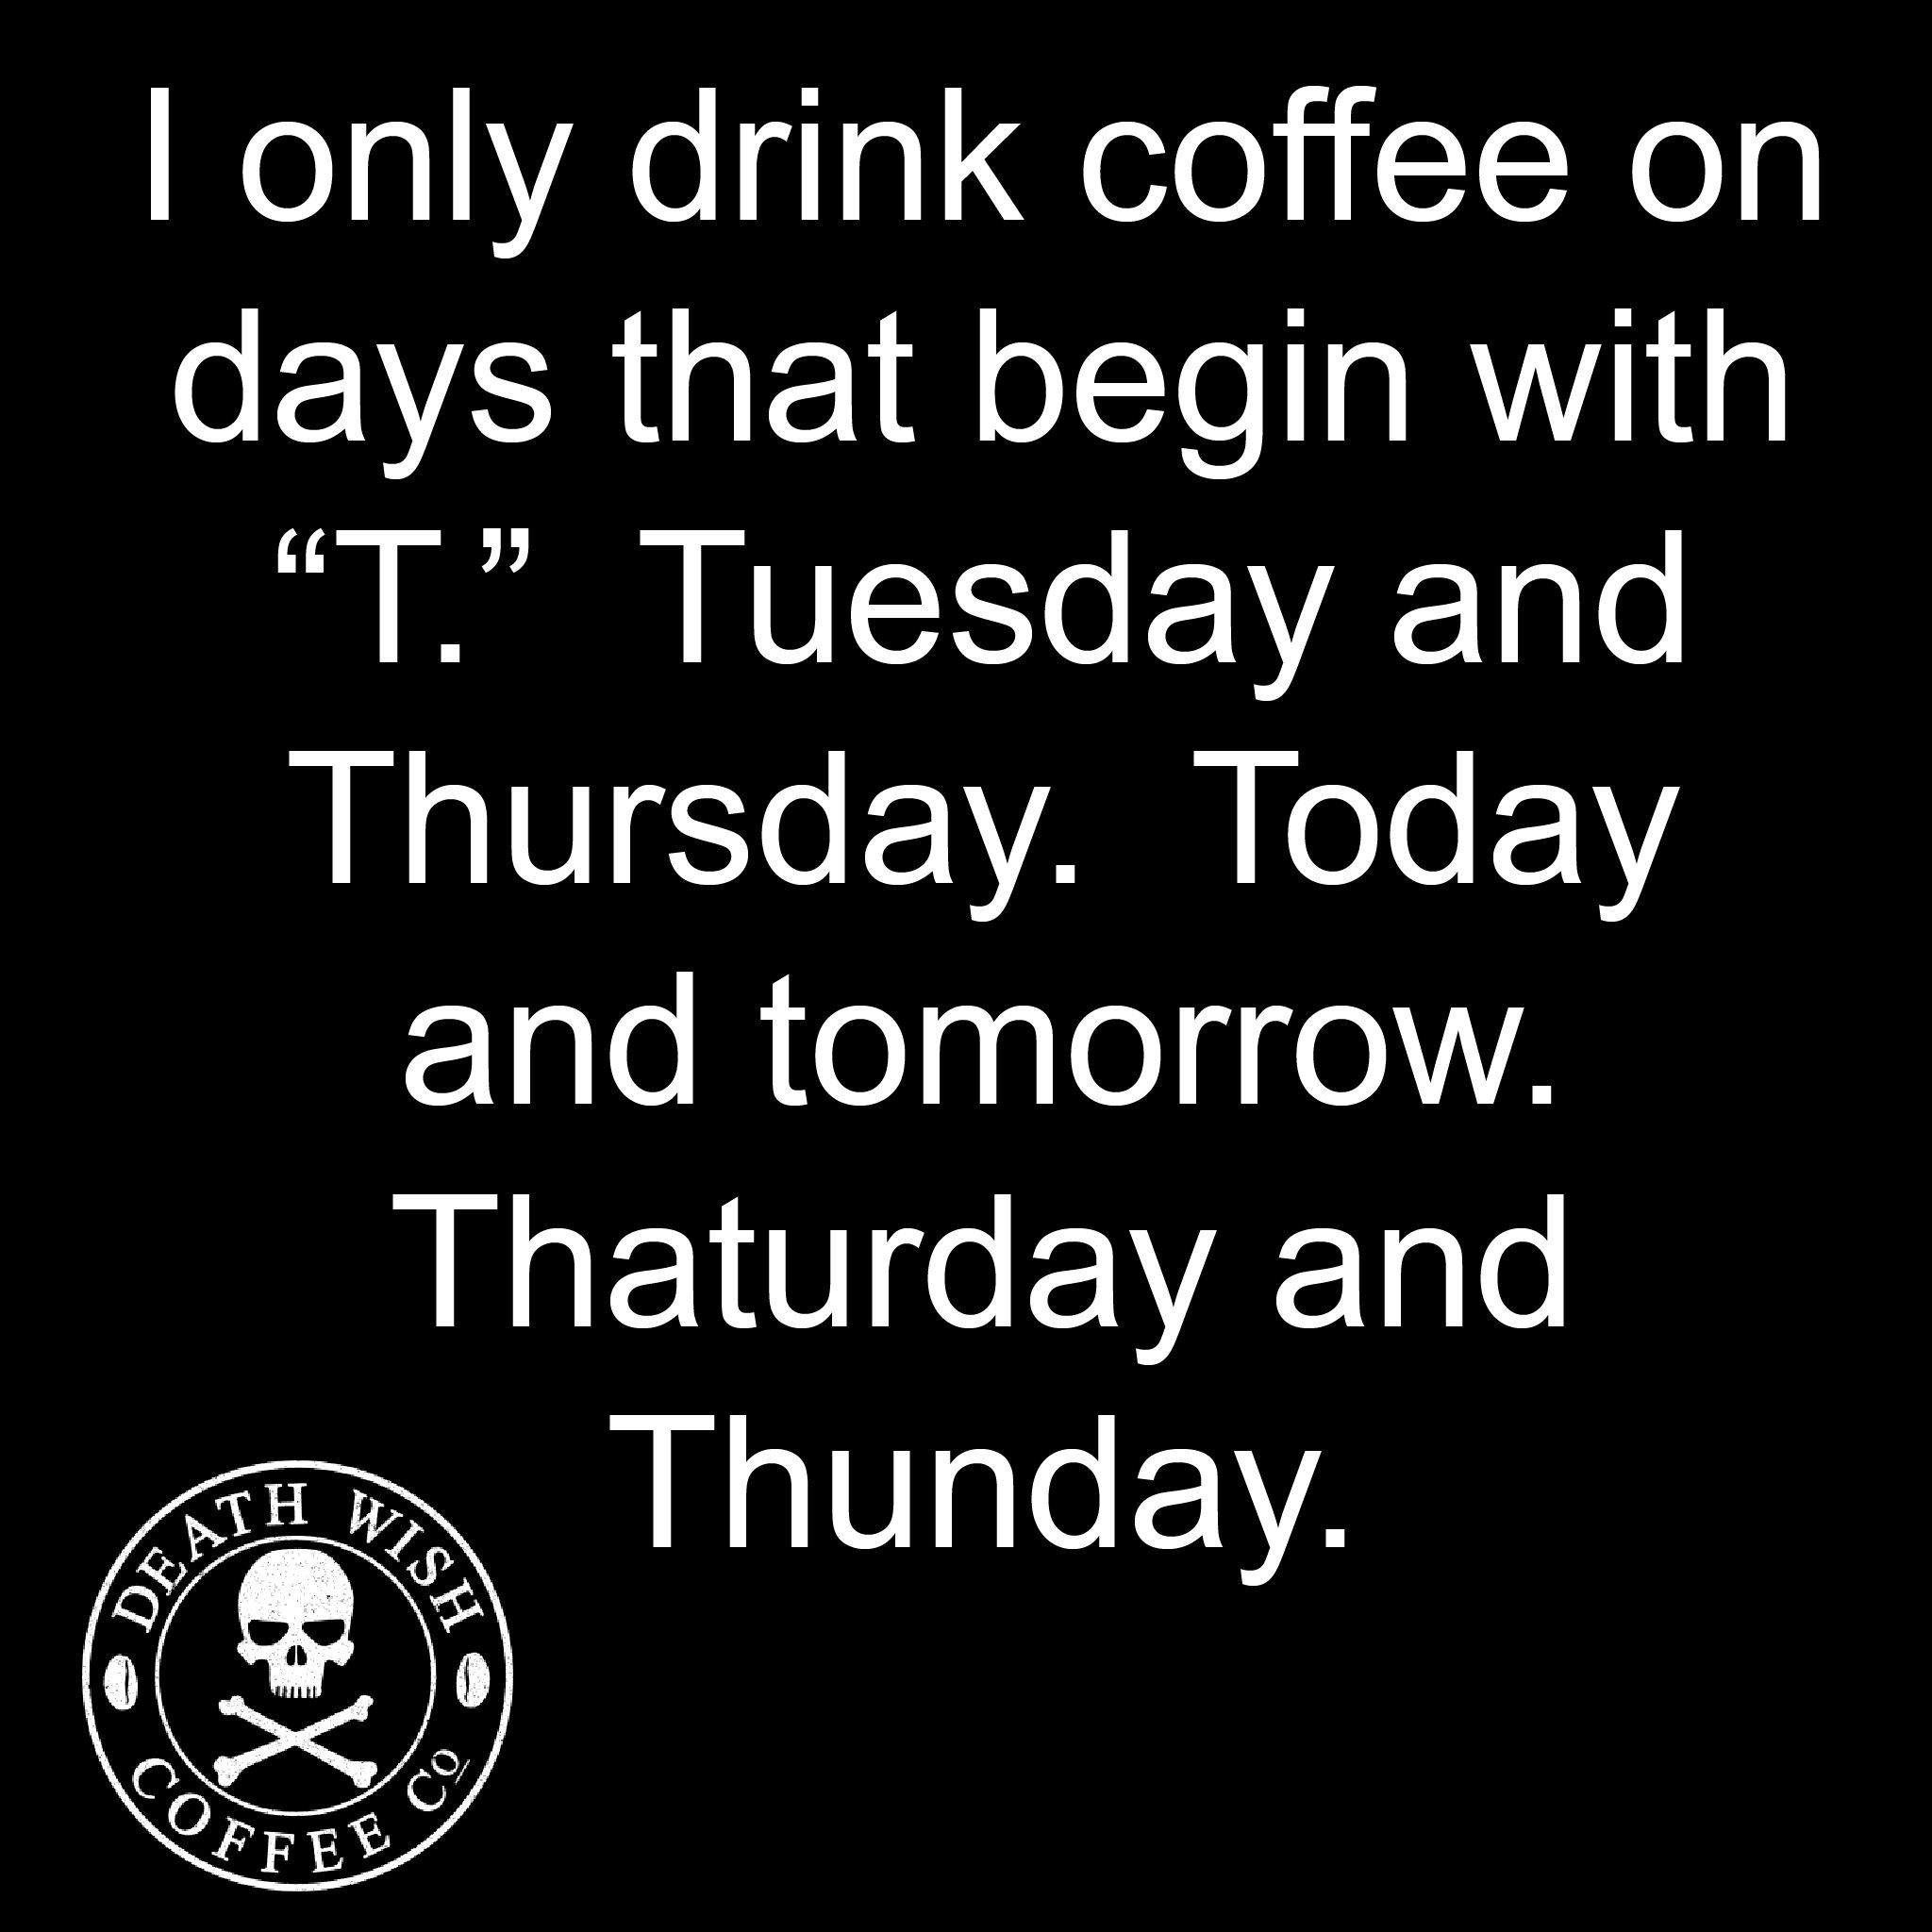 Pin By Nathalie Ridgley On Coffee Time Funny Coffee Quotes Coffee Quotes Coffee Obsession